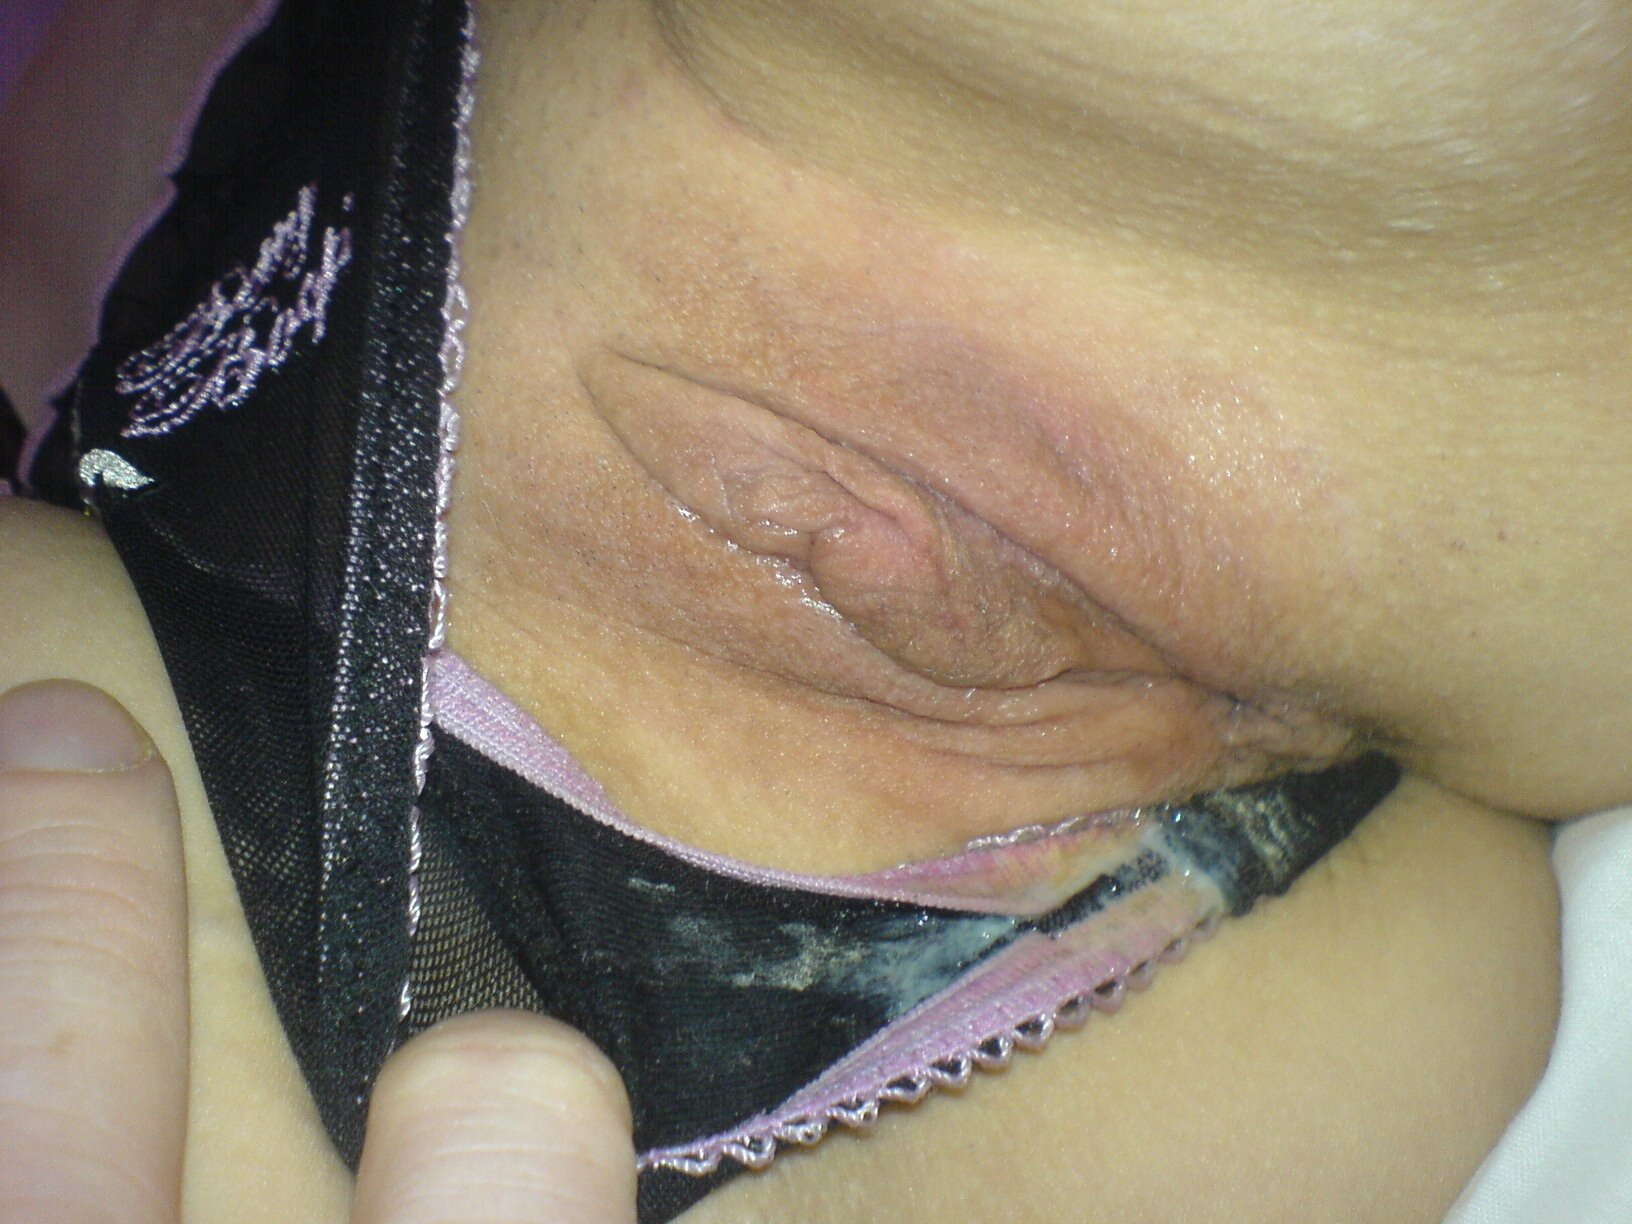 Cum wife filled panties bring captions home